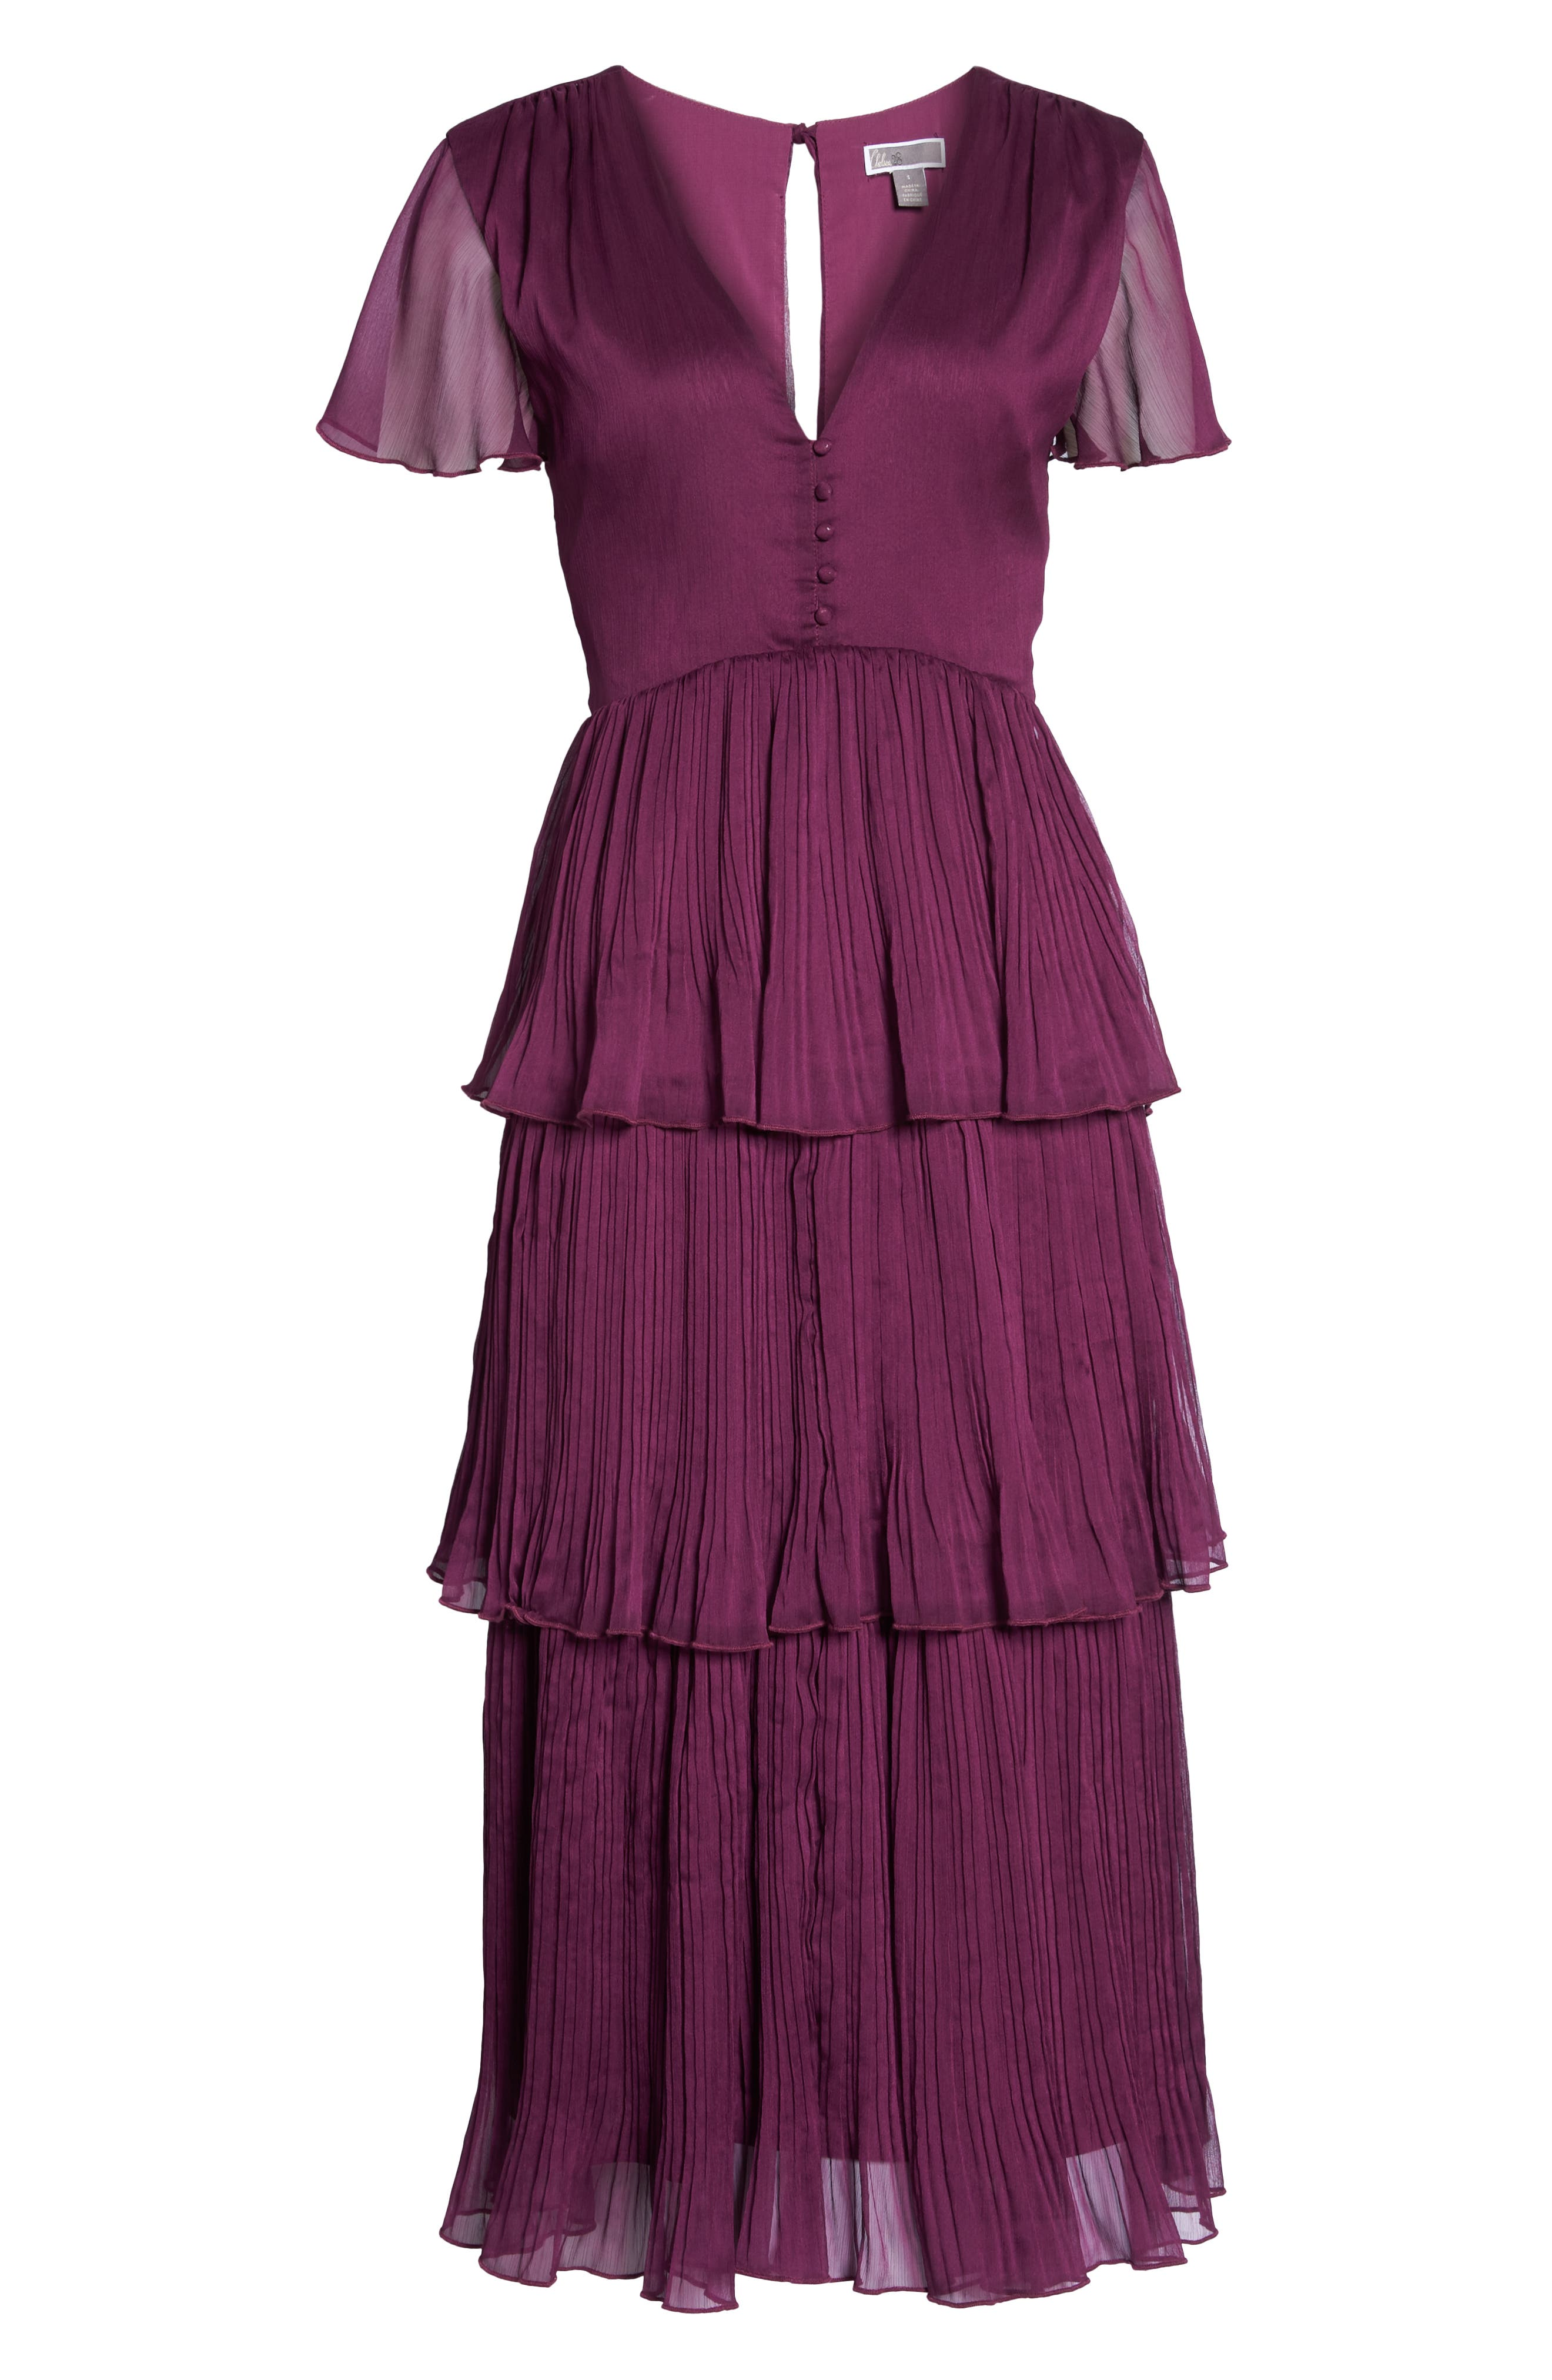 Tiered Skirt Midi Dress,                             Alternate thumbnail 7, color,                             PURPLE DARK